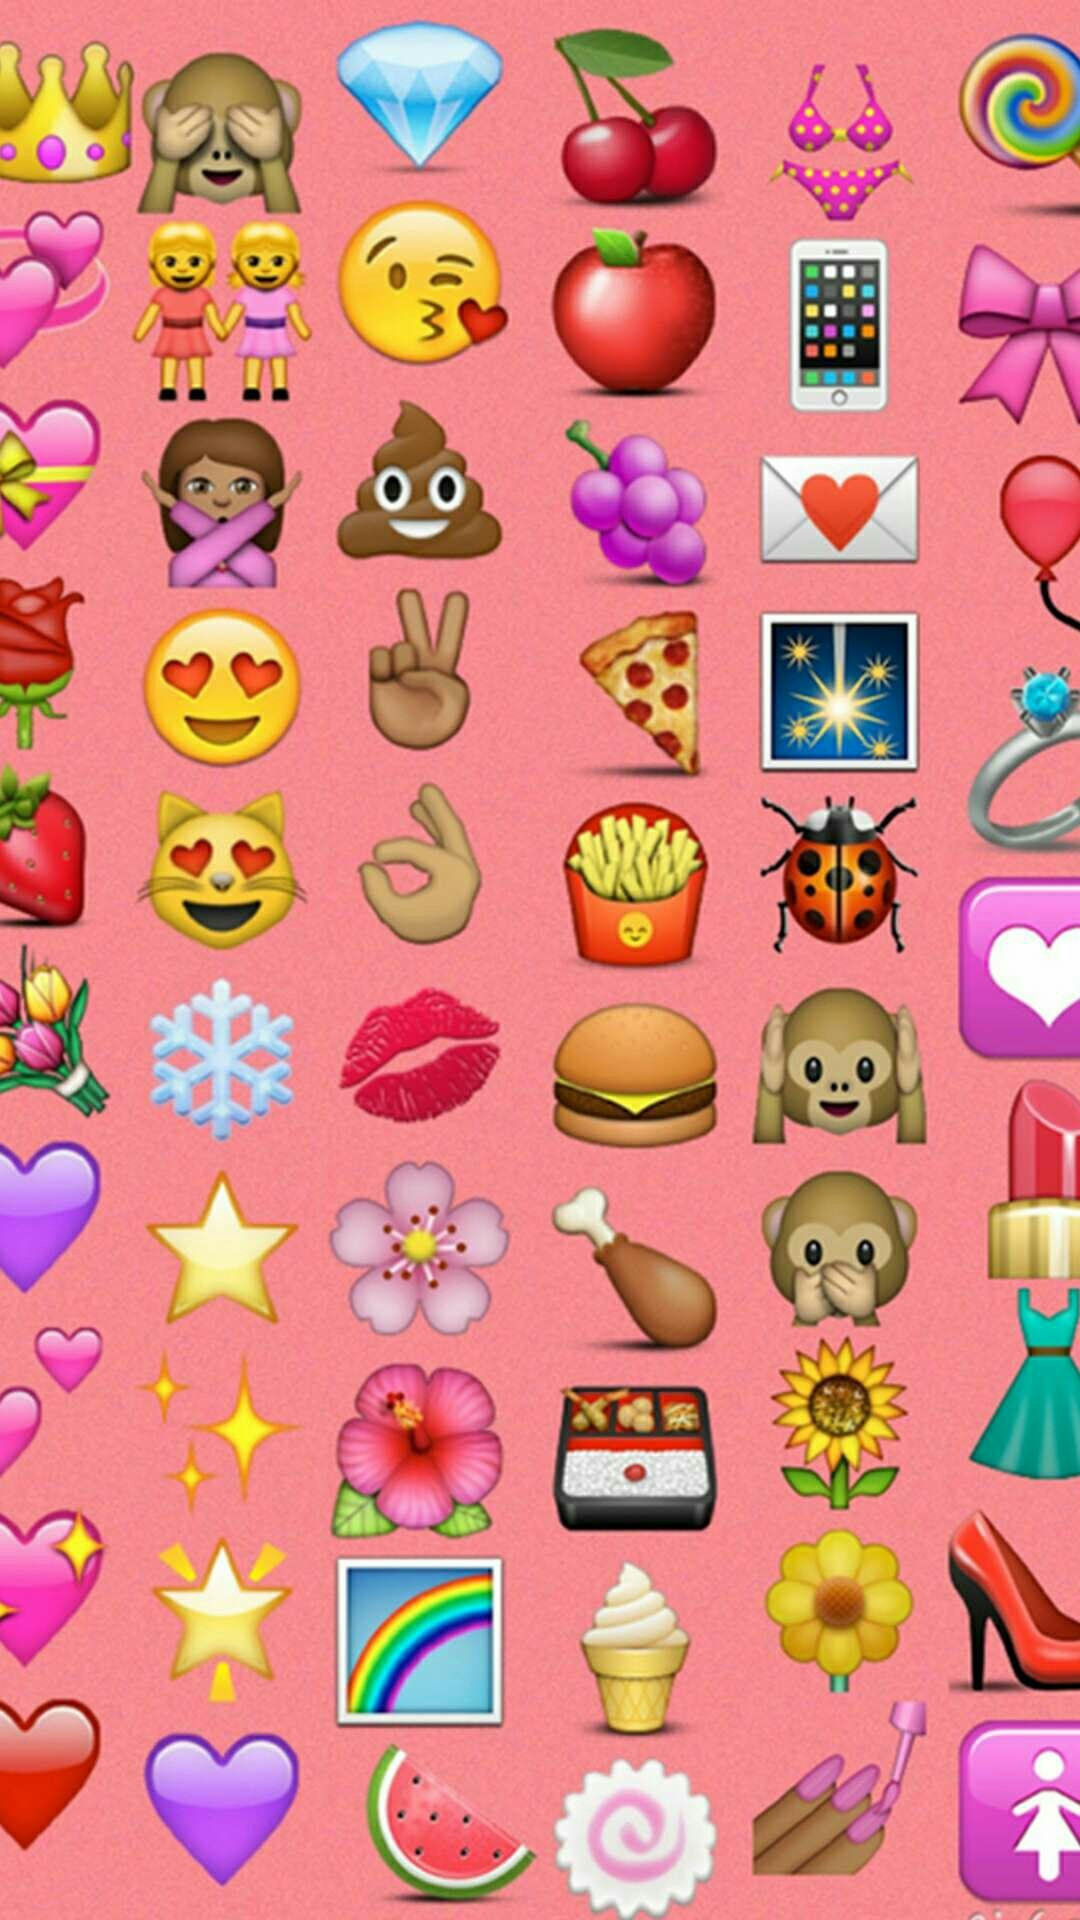 Emoji Wallpapers for Boys (54+ images)